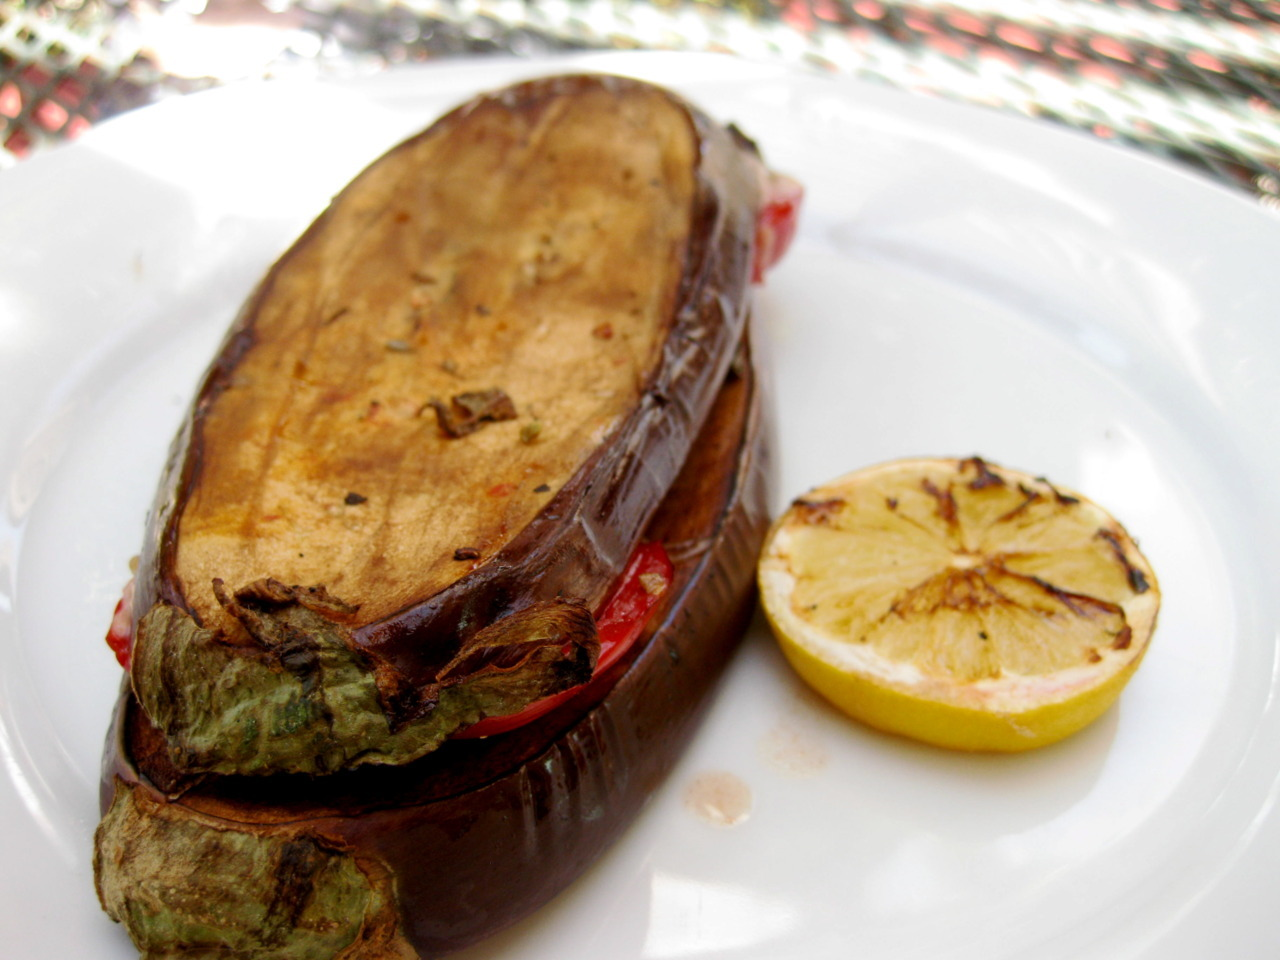 MMMM I love veggie-tastic lunches. This is my grilled Grilled Balsamic Eggplant Basil Sandwich with fresh heirloom tomatoes and a bit of part-skim mozzarella.  Recipe: 1 Eggplant sliced lengthwise 1/4 inch thick (I just grill em all and reserve the extra slices for later) Fresh Basil (as much as you want) 2 slices heirloom tomato  1/4 cup shredded part skim mozerella  1 TBS Balsamic  1 tsp Oregano  Salt and Pepper to taste  Pre-heat the grill. Then I mix the balsamic and oregano and salt and pepper and then I brush the glaze on both sides of the eggplant slices. Then I spray the eggplant with some olive oil pam and put them on the grill on high for about 10 minutes on each side or until I meet my desired softness. Lastly I put the sandwich together by stacking the basil, cheese and tomatoes in between two eggplant slices and then I place the sandwich back on the grill until the cheese is melted. Voila! Healthy veggietasticness.